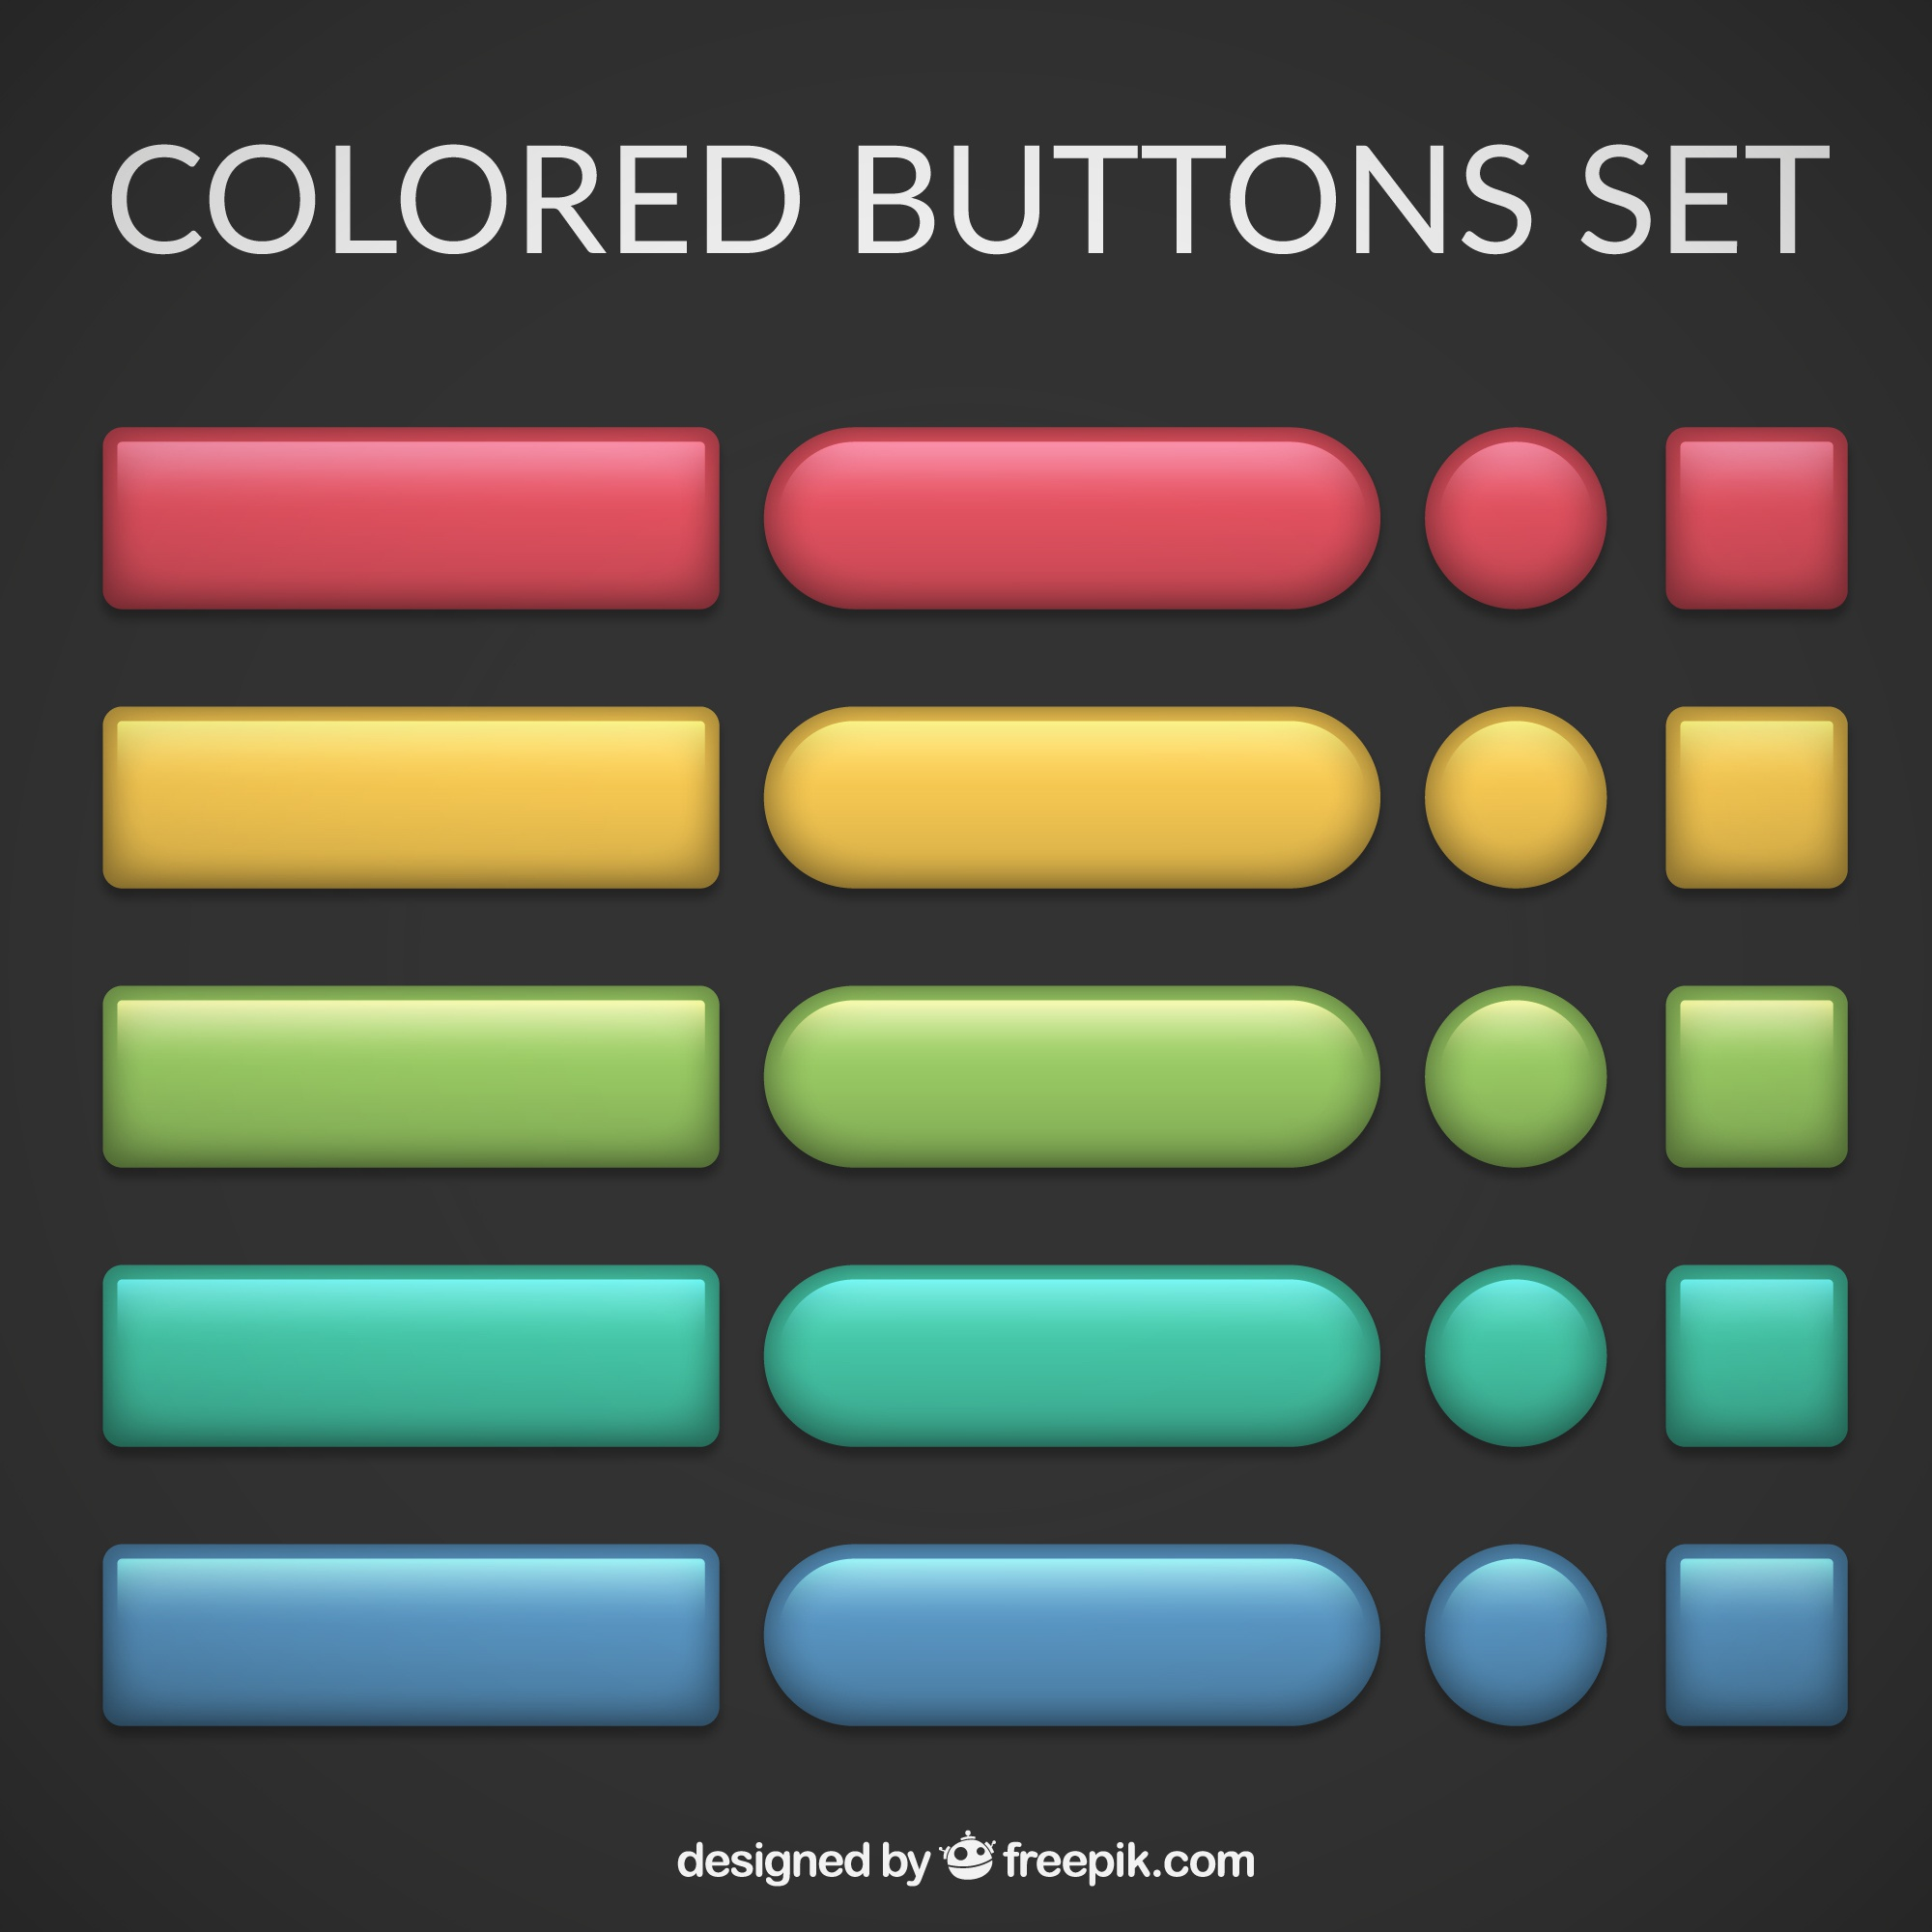 design a button template free - buttons vectors 2 600 free files in ai eps format